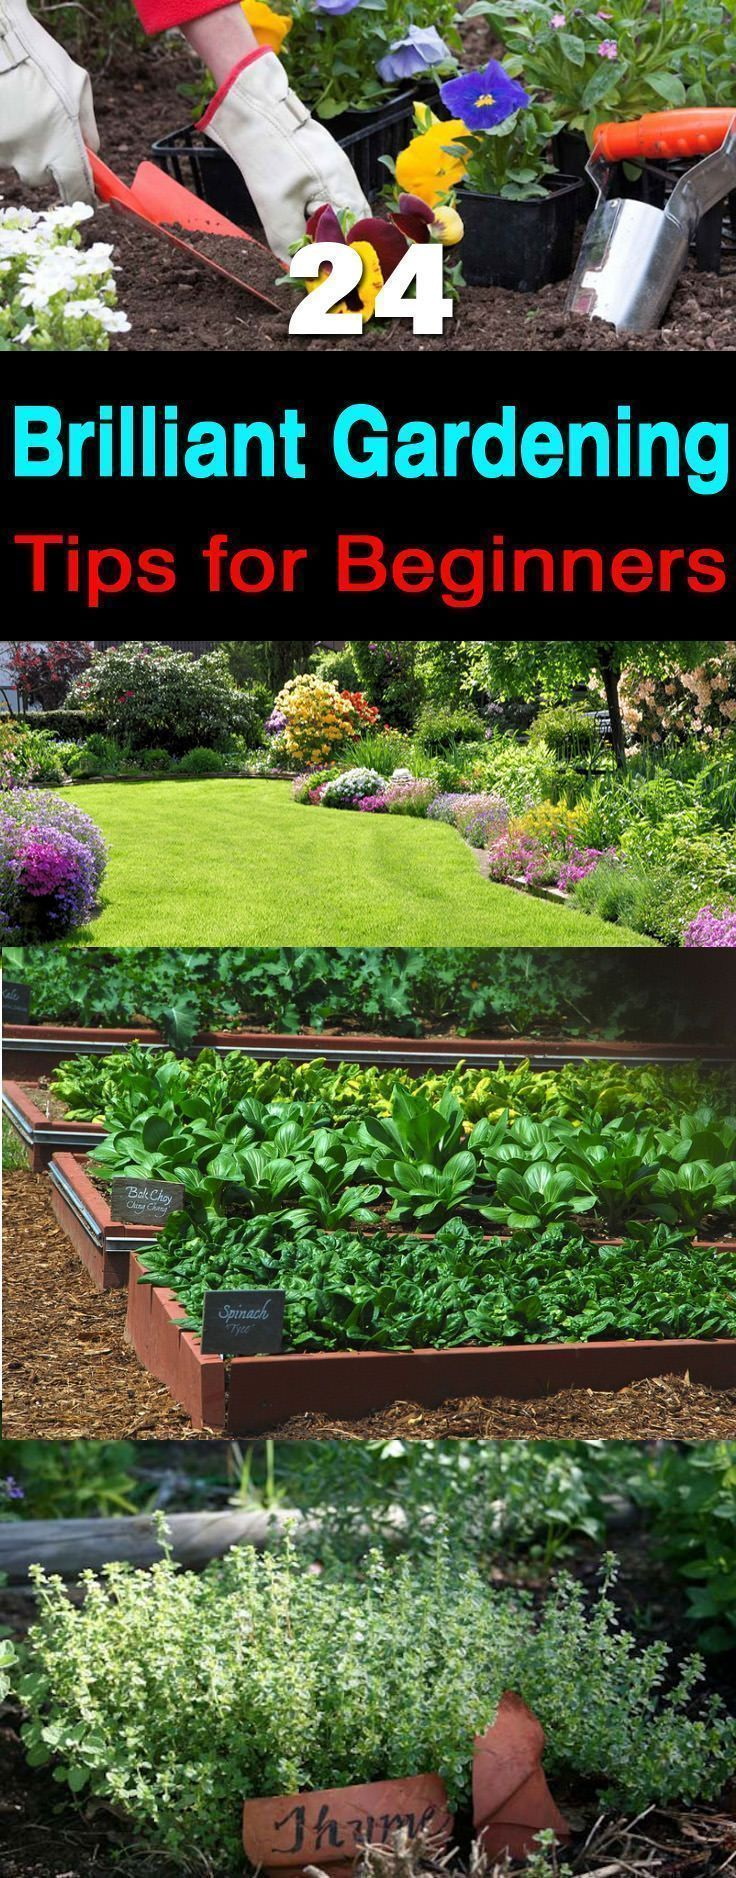 24 Brilliant Gardening Tips for Beginners